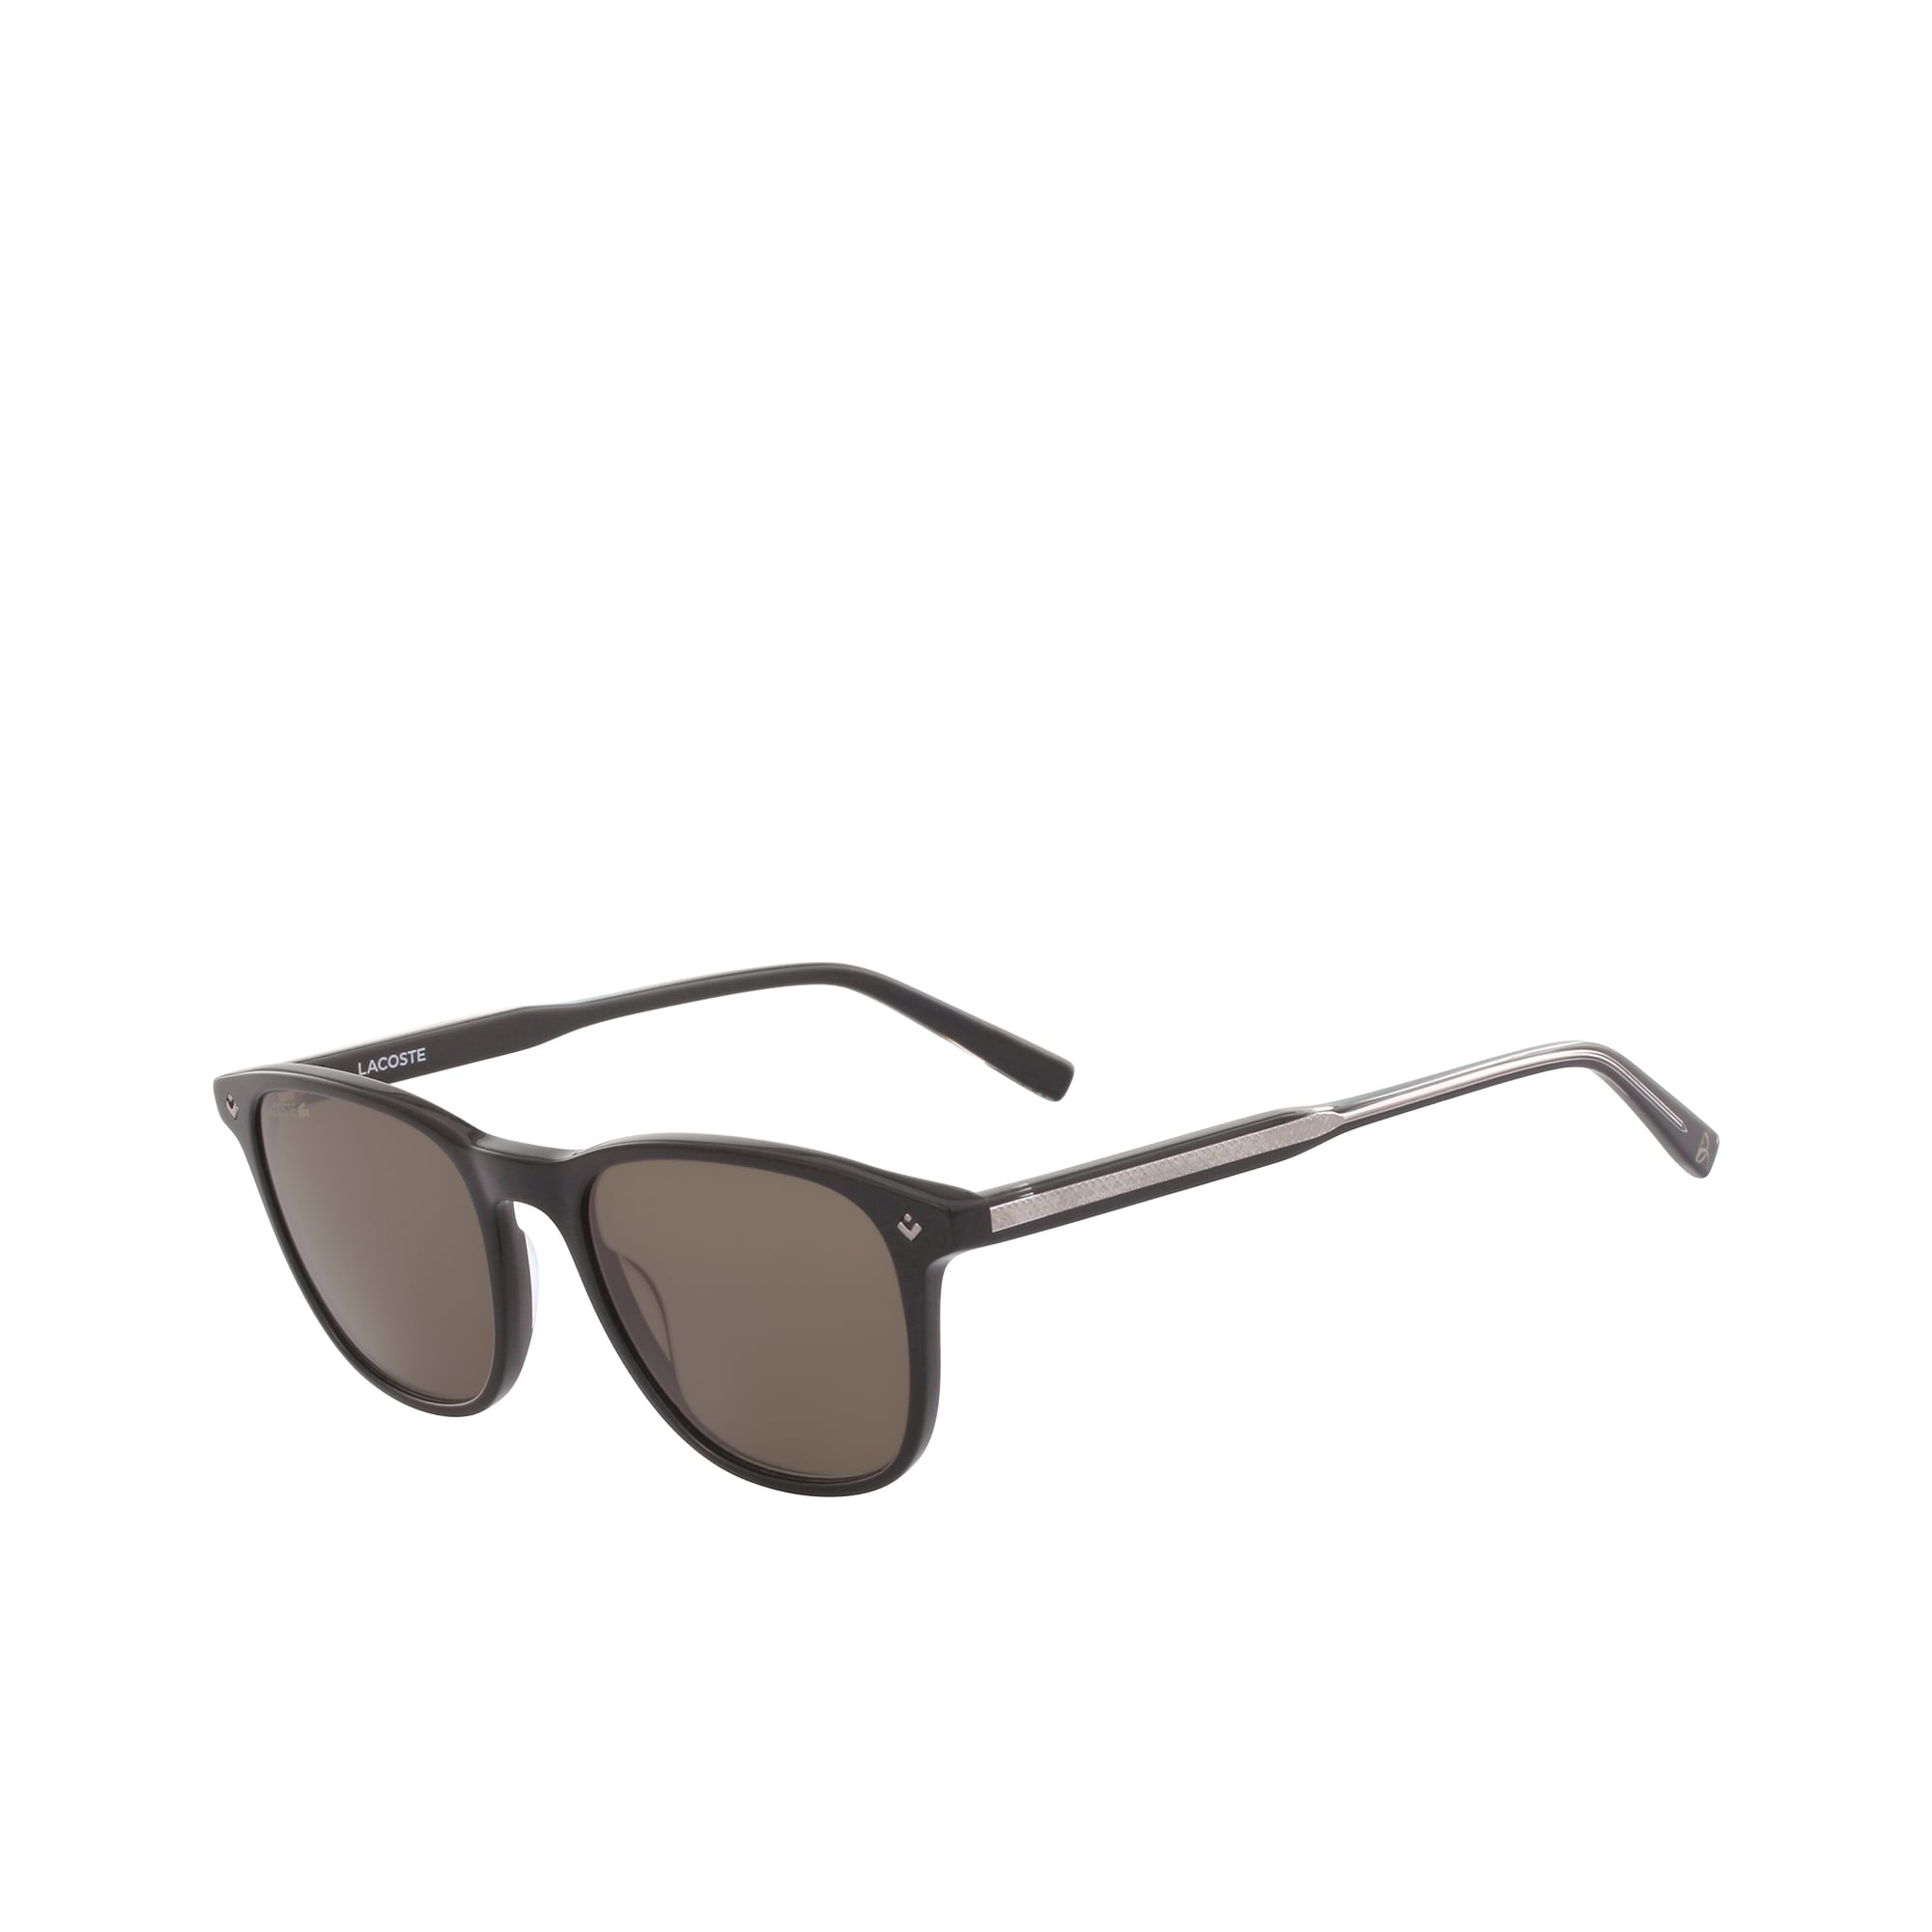 480c40475b1b Men's Sunglasses | Accessories | LACOSTE